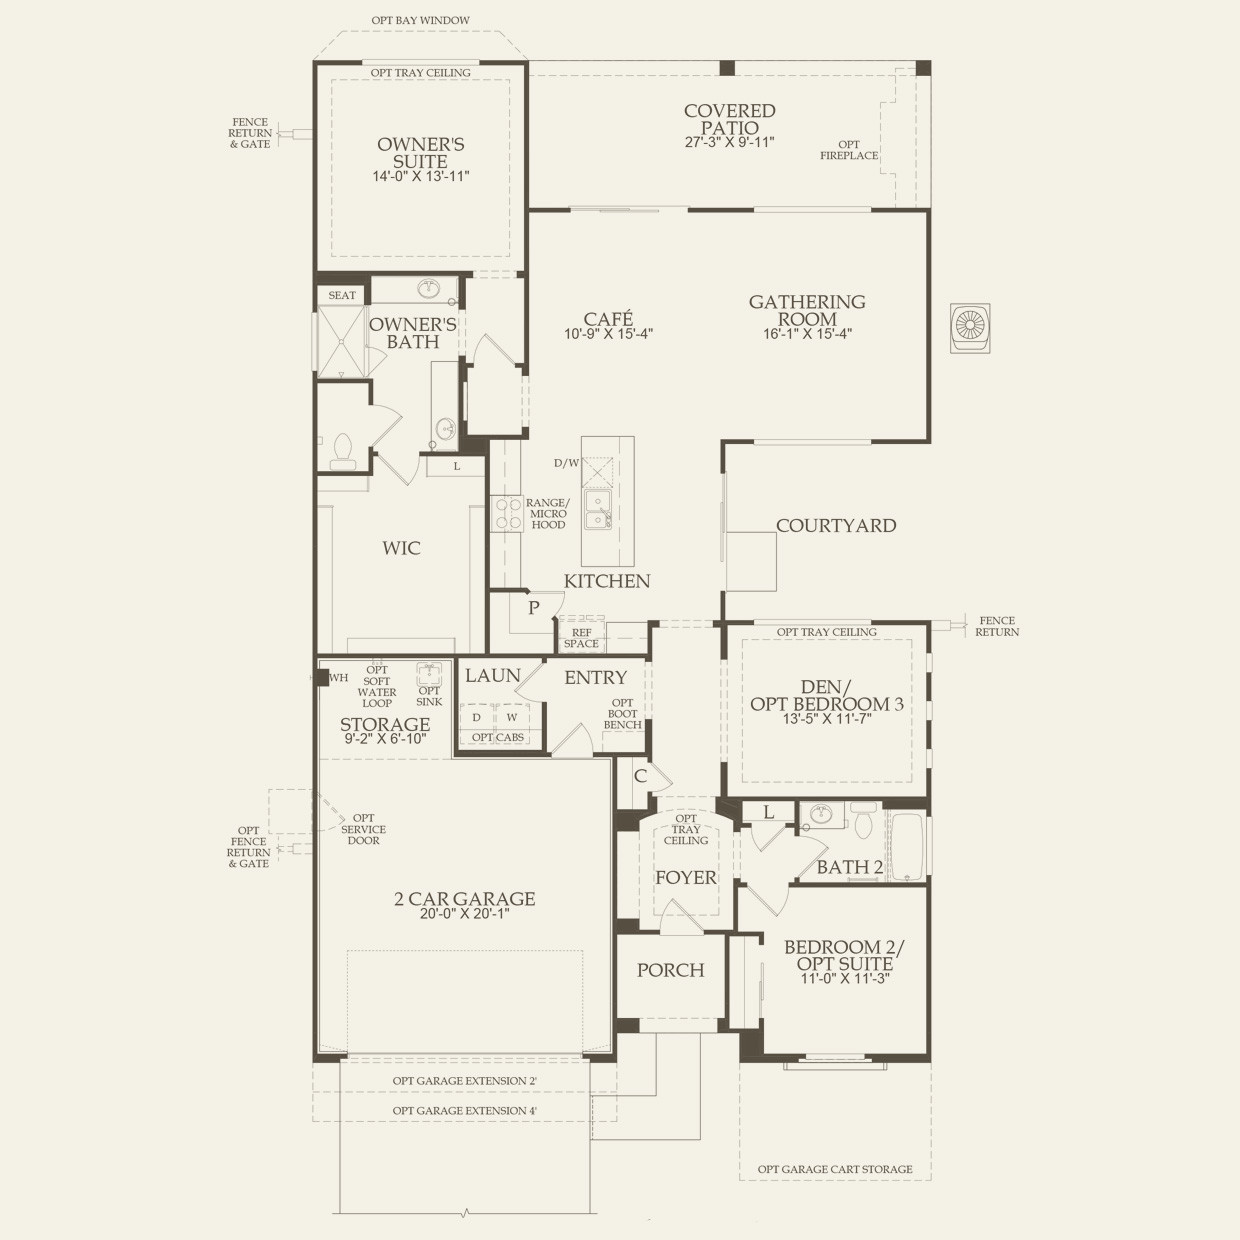 Hiline Homes Plan 1780 additionally Ryland Homes Floor Plans Florida in addition Continental Homes Floor Plans likewise Moen Home Care Tool Free Transfer Bench further Index1. on pulte homes arizona floor plans